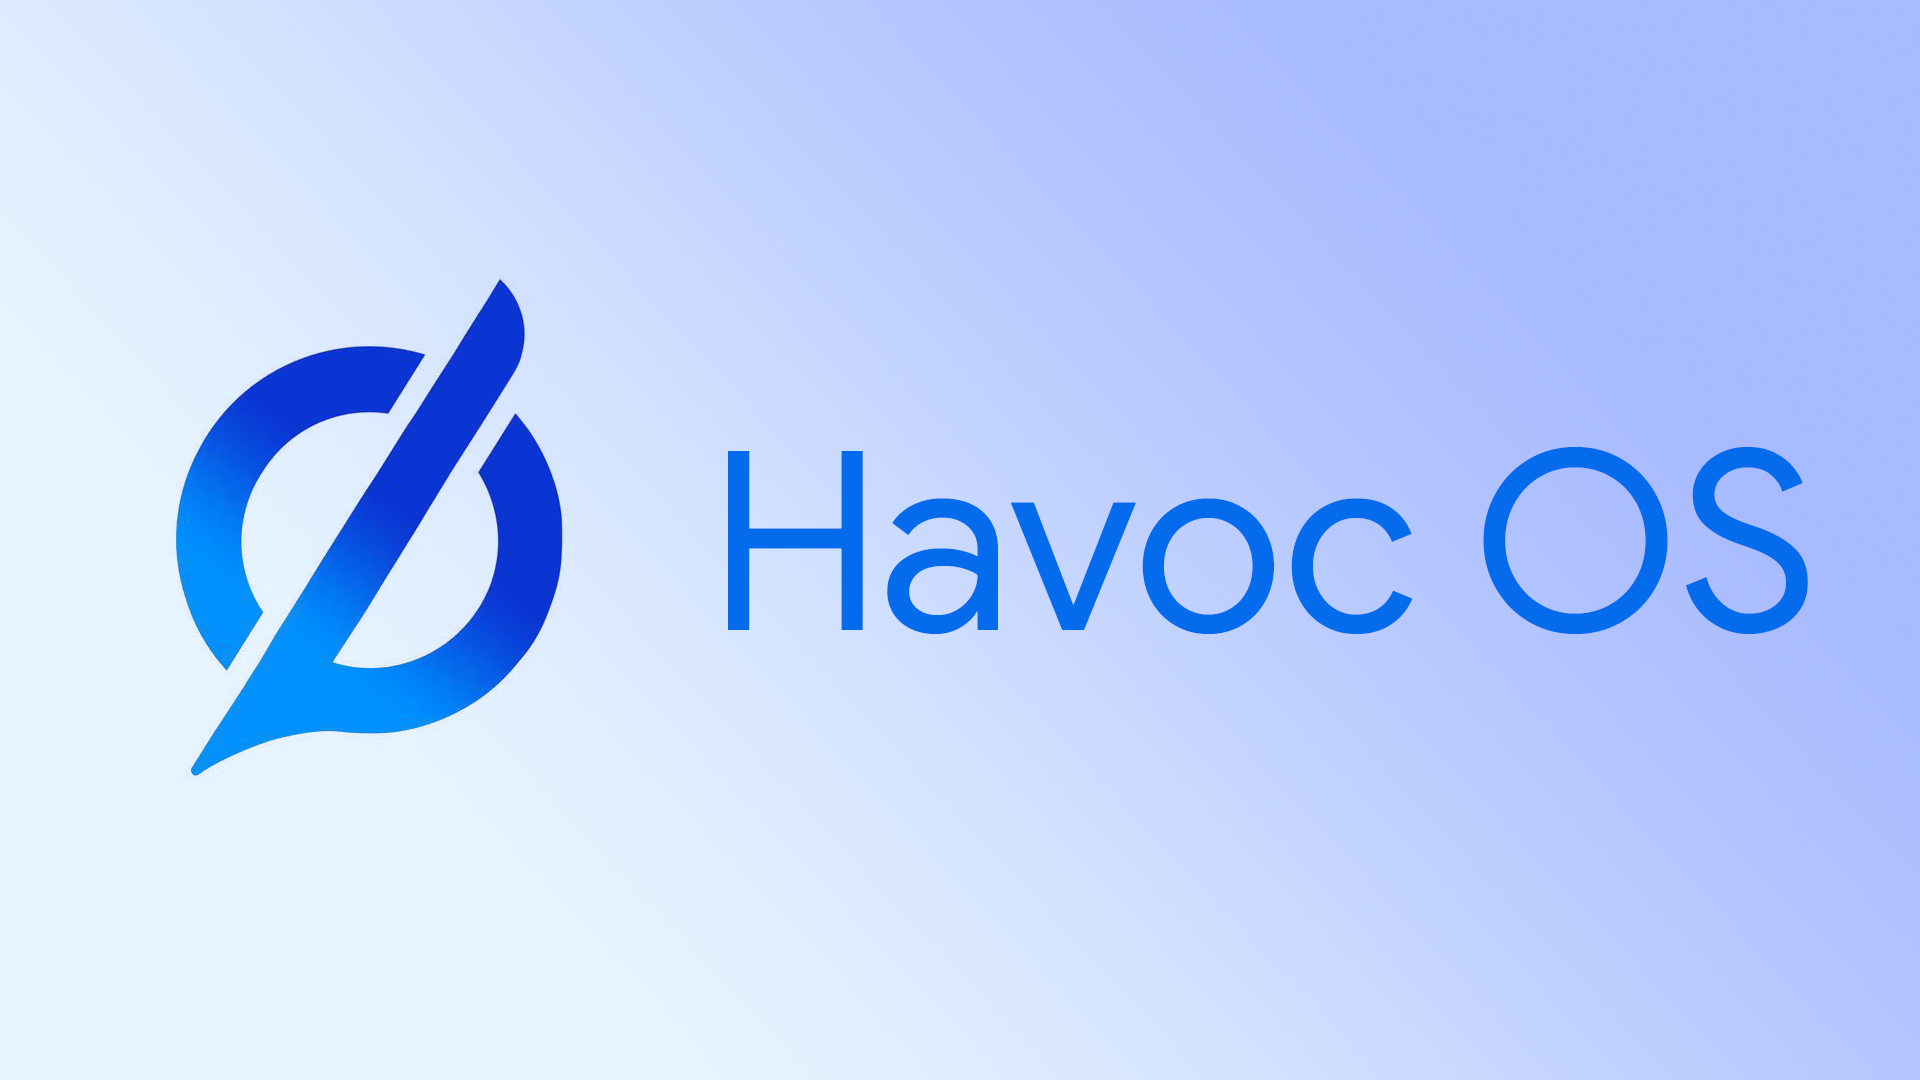 Download Havoc OS 4.1 Android 11 for Redmi Note 8 | GApps Build